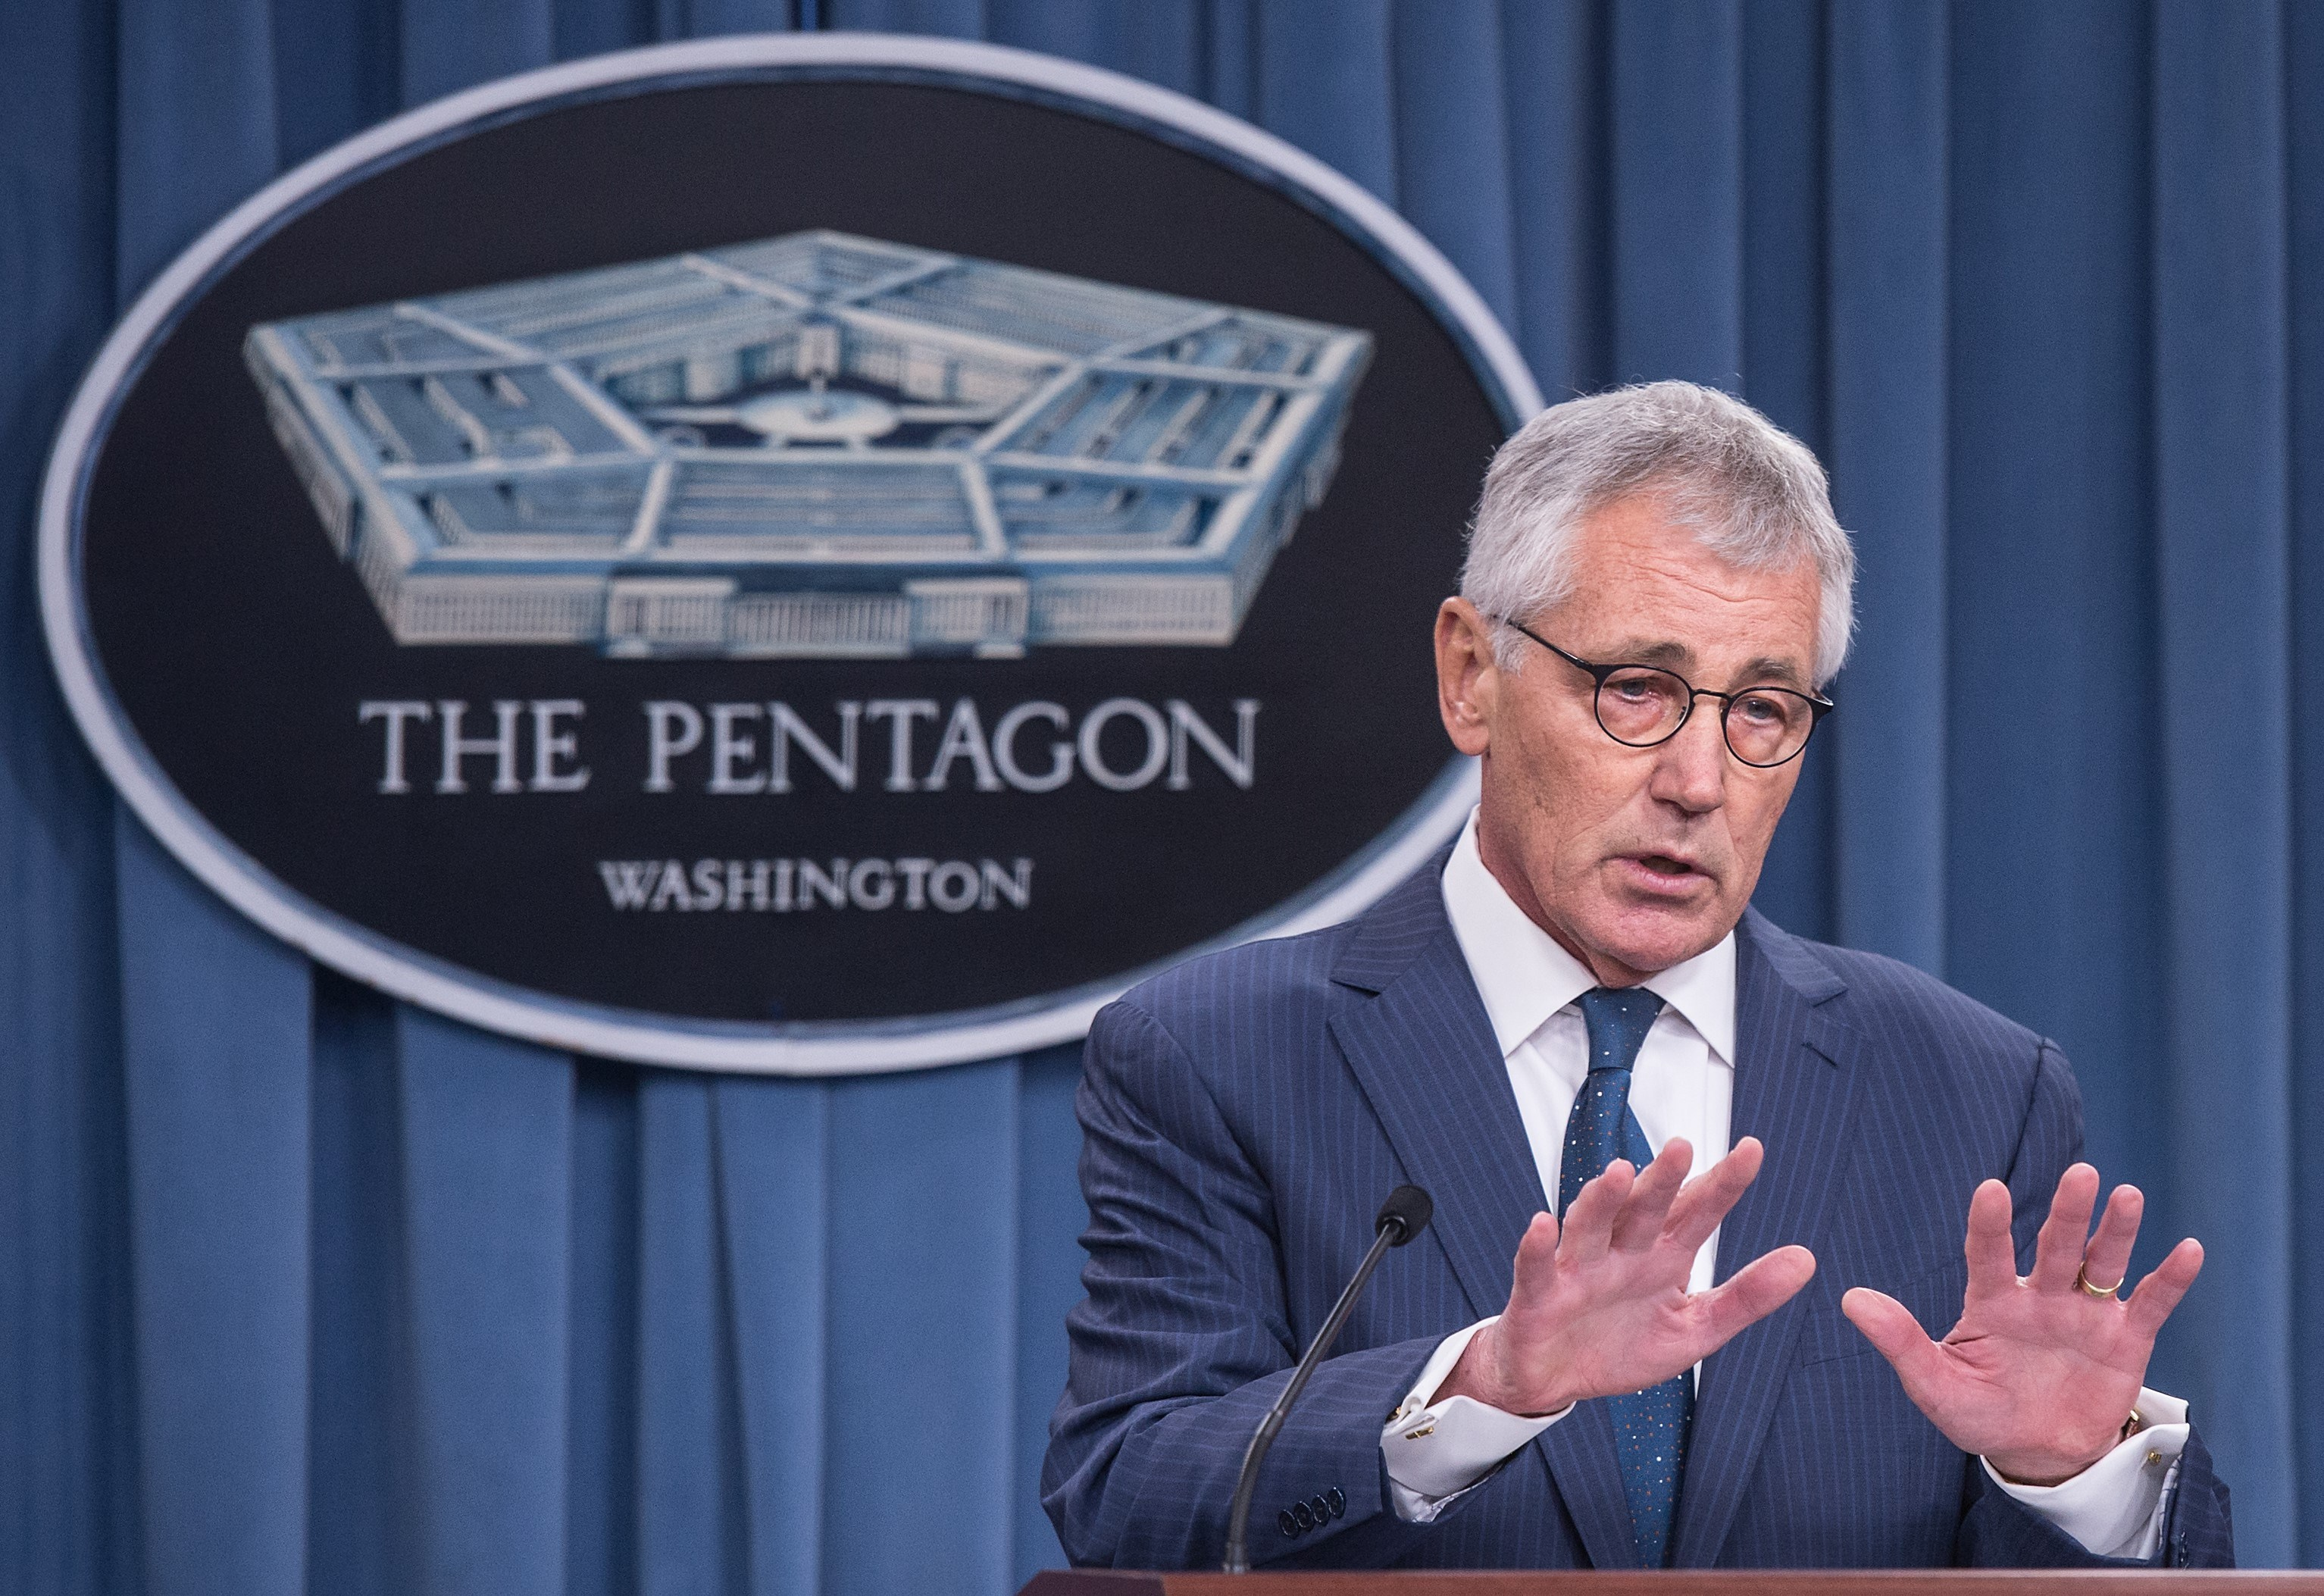 Hagel: The White House Tried to 'Destroy' Me – Foreign Policy